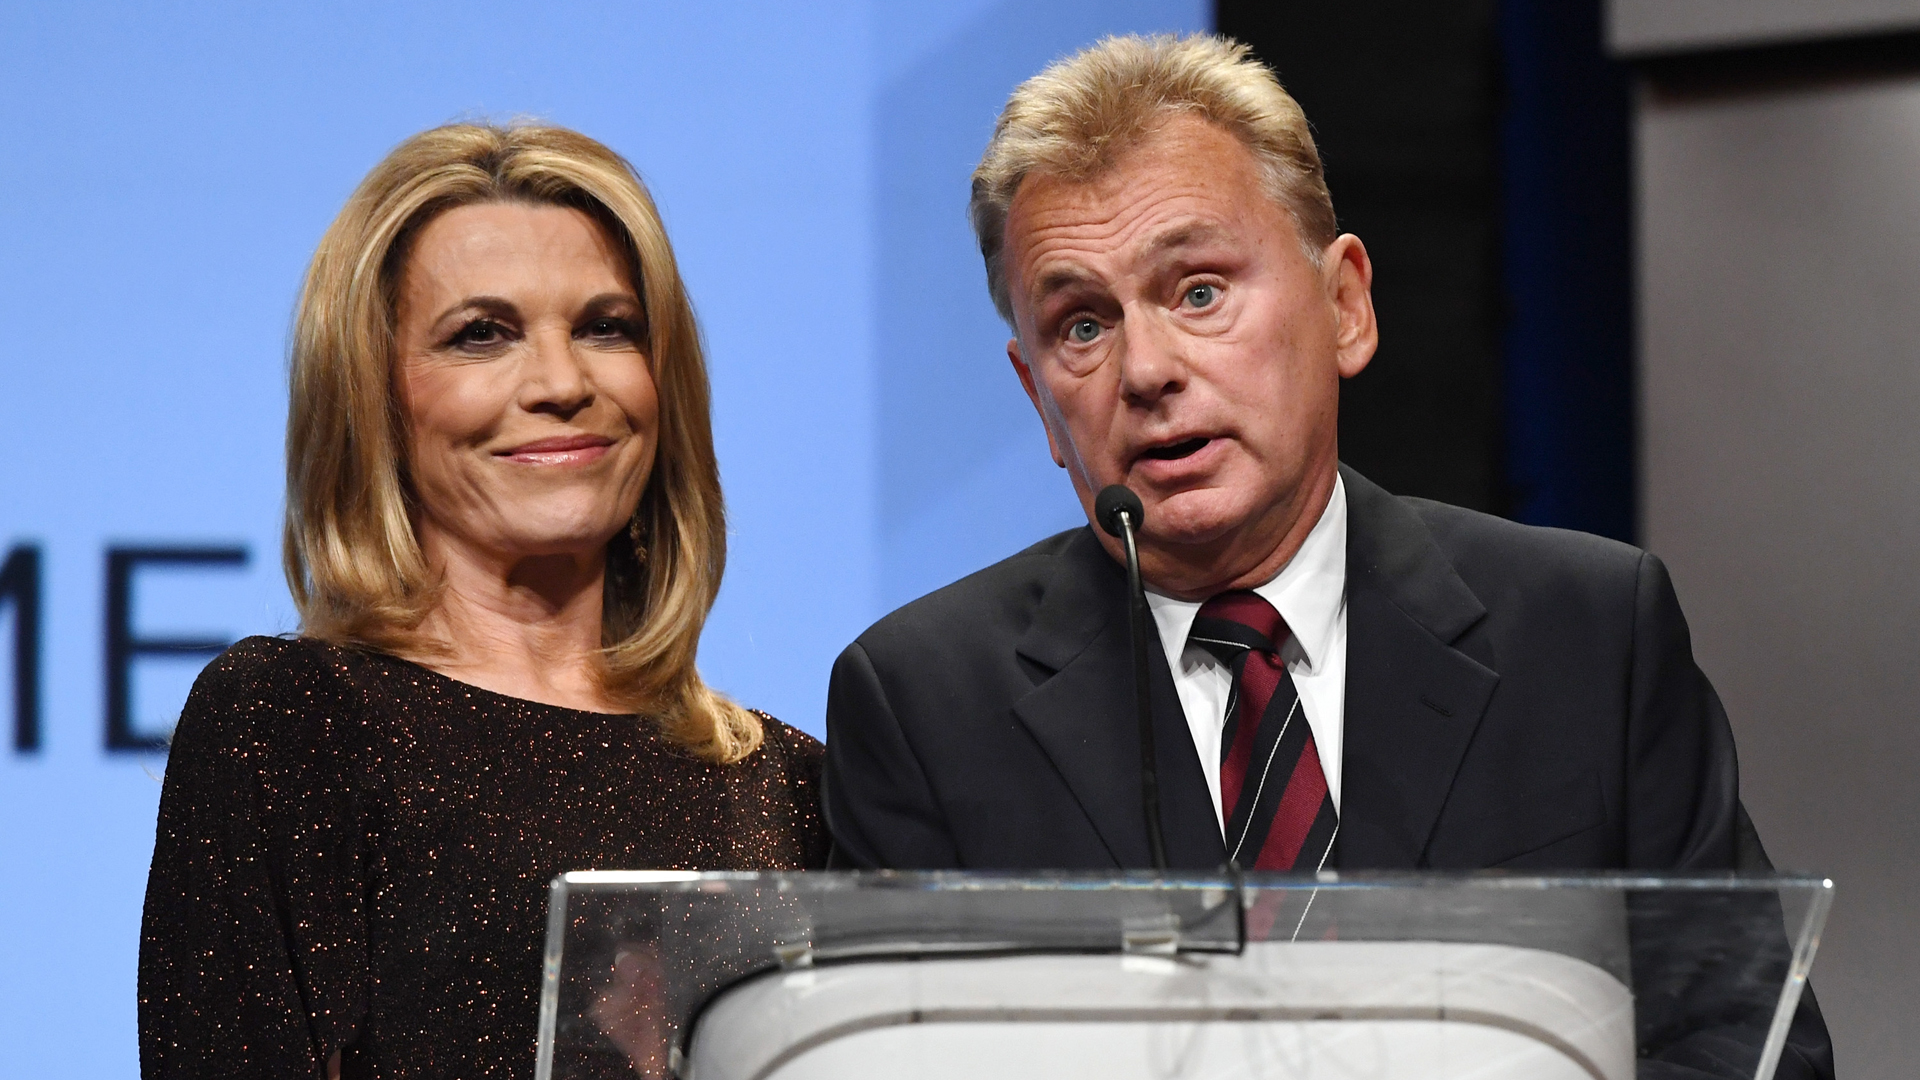 """""""Wheel of Fortune"""" hostess Vanna White (L) and host Pat Sajak speak as they are inducted into the National Association of Broadcasters Broadcasting Hall of Fame during the NAB Achievement in Broadcasting Dinner at the Encore Las Vegas on April 9, 2018 in Las Vegas, Nevada. (Credit: Ethan Miller/Getty Images)"""